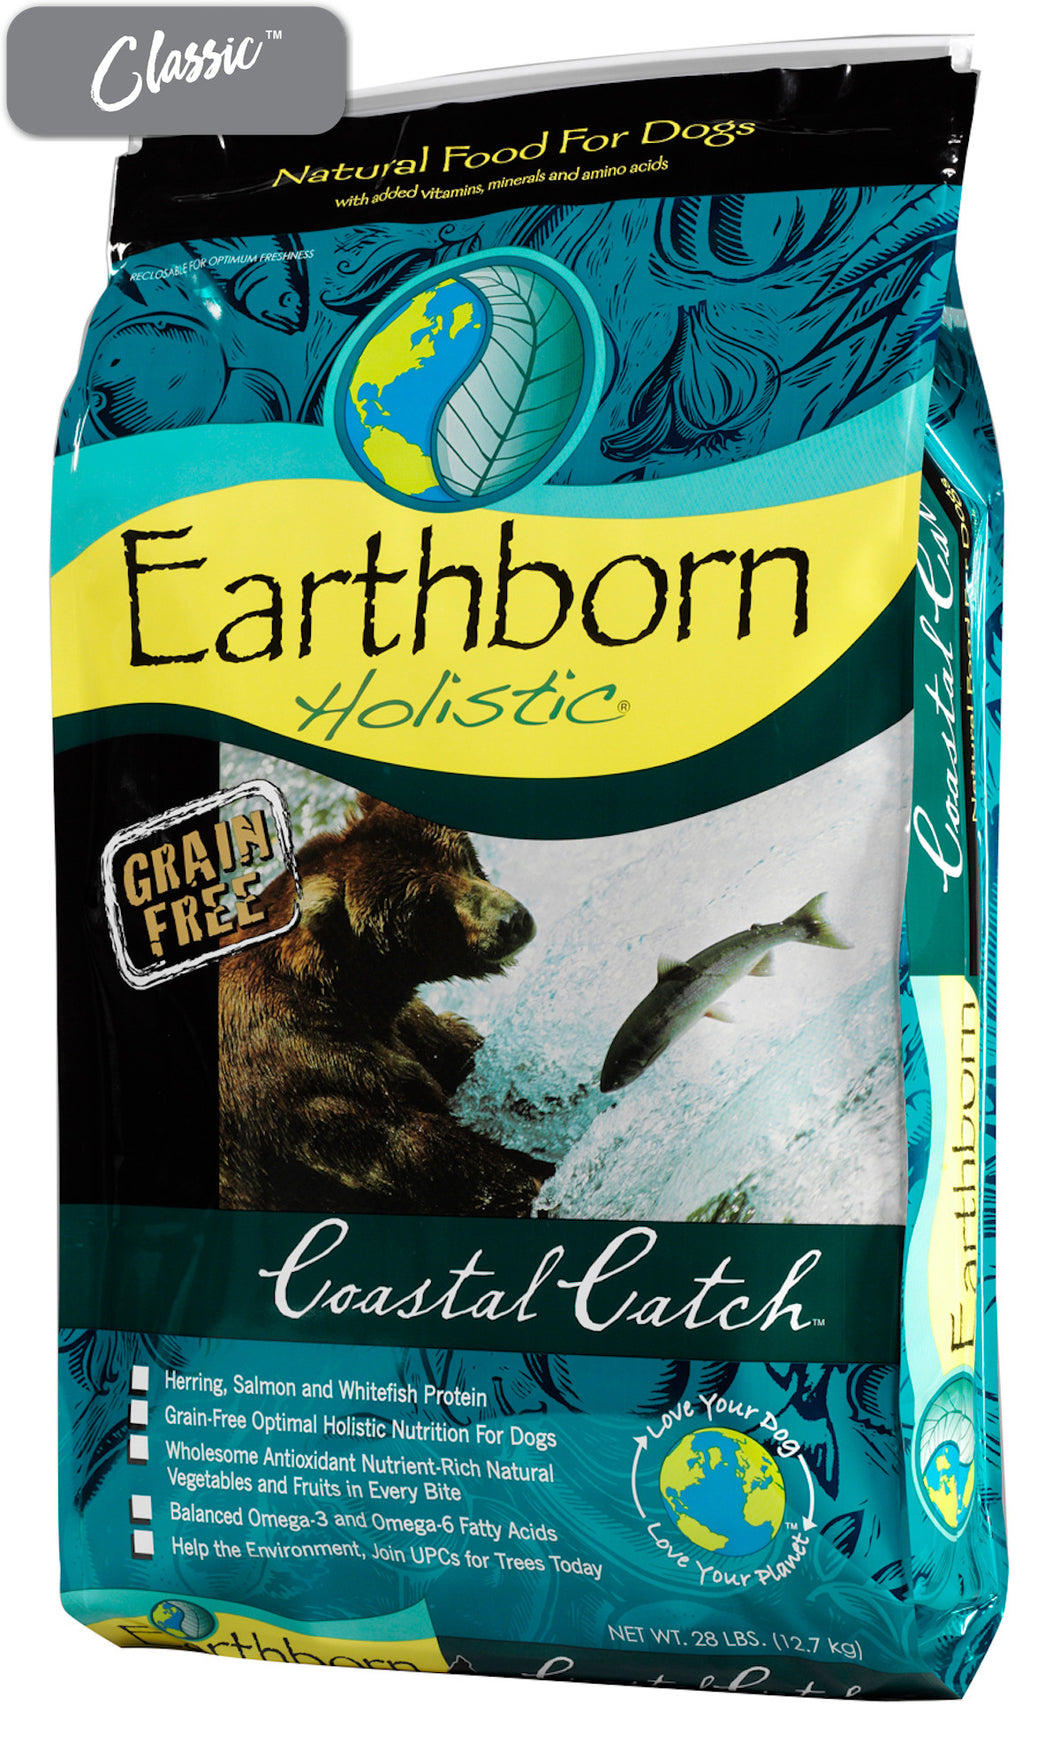 Earthborn Coastal Catch Salmon Dog Food